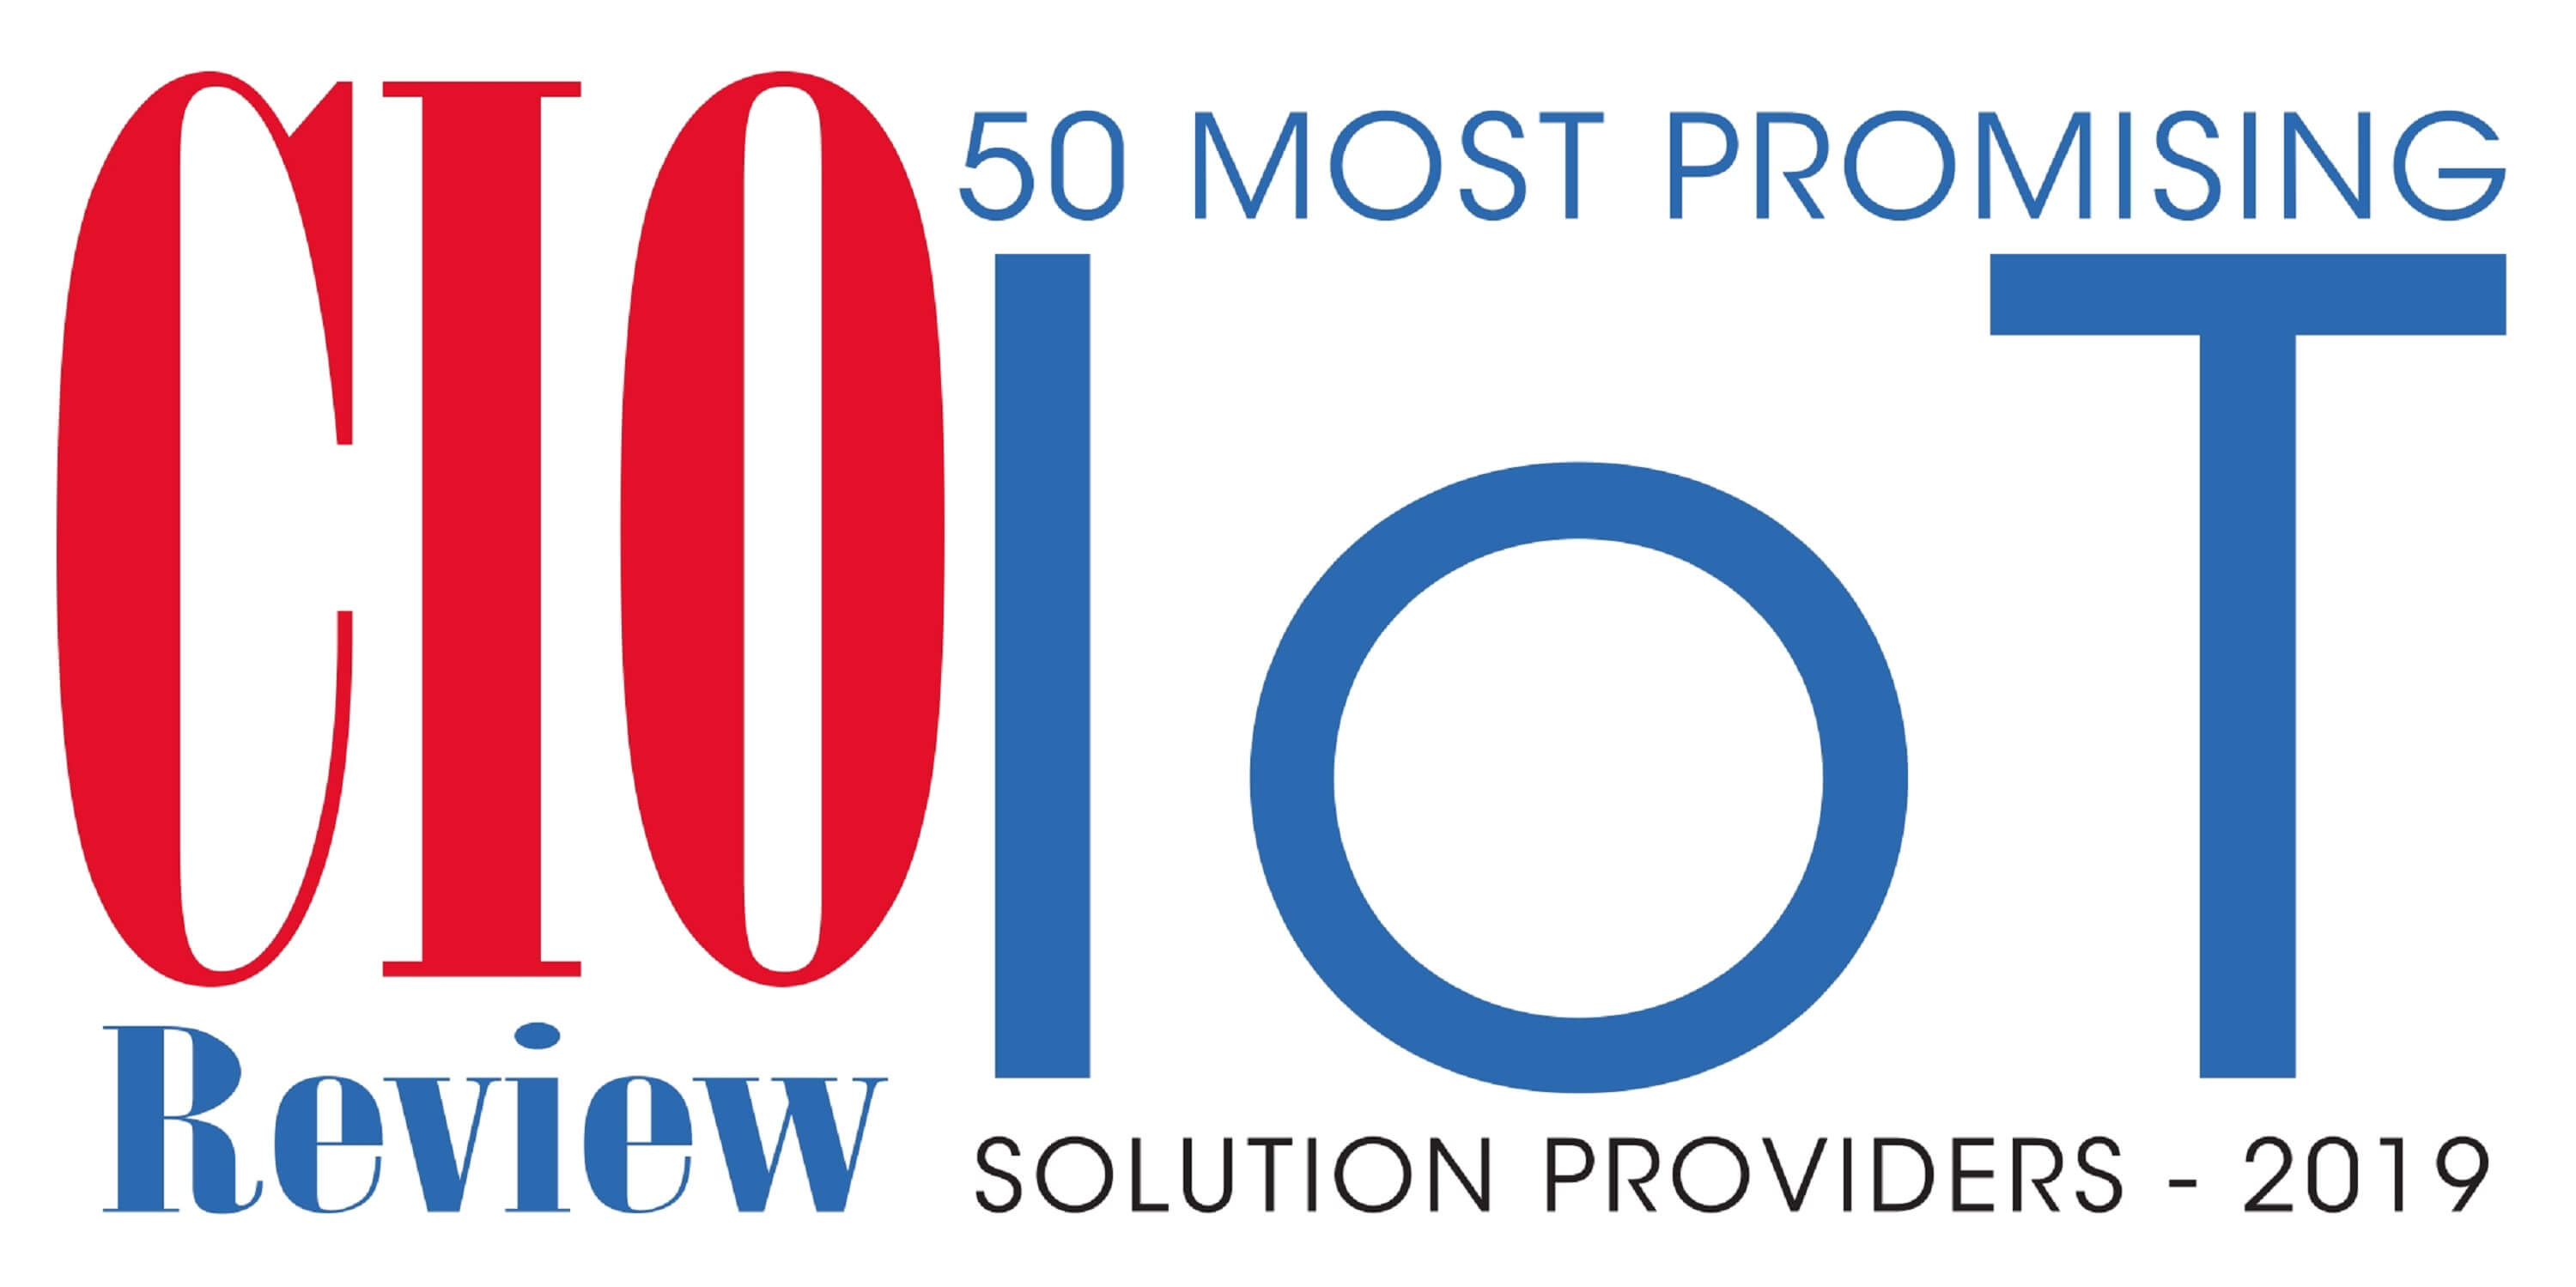 SpinDance Included in CIO 50 Most Promising IoT Solution Providers of 2019